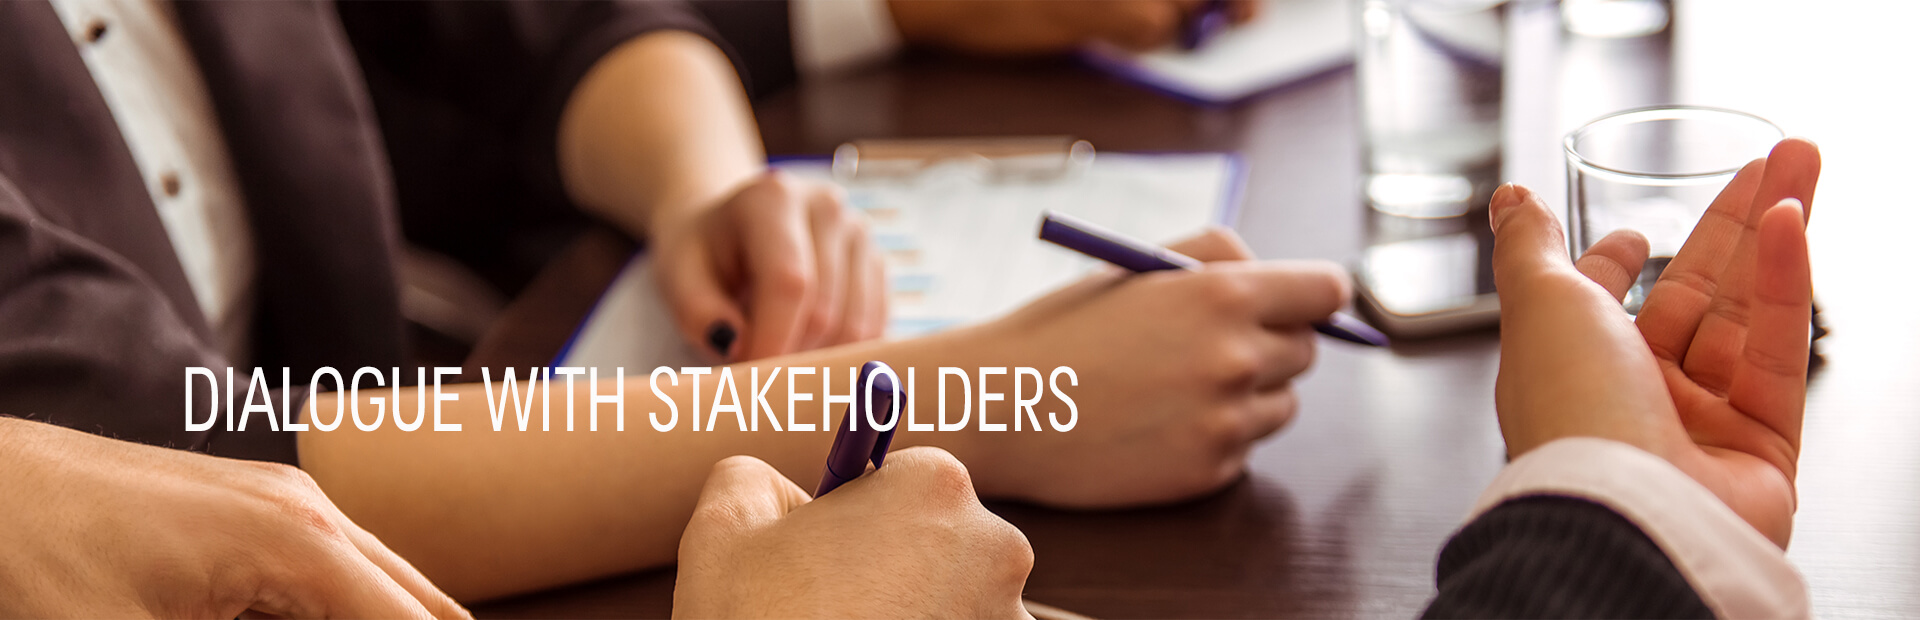 Dialogue with stakeholders